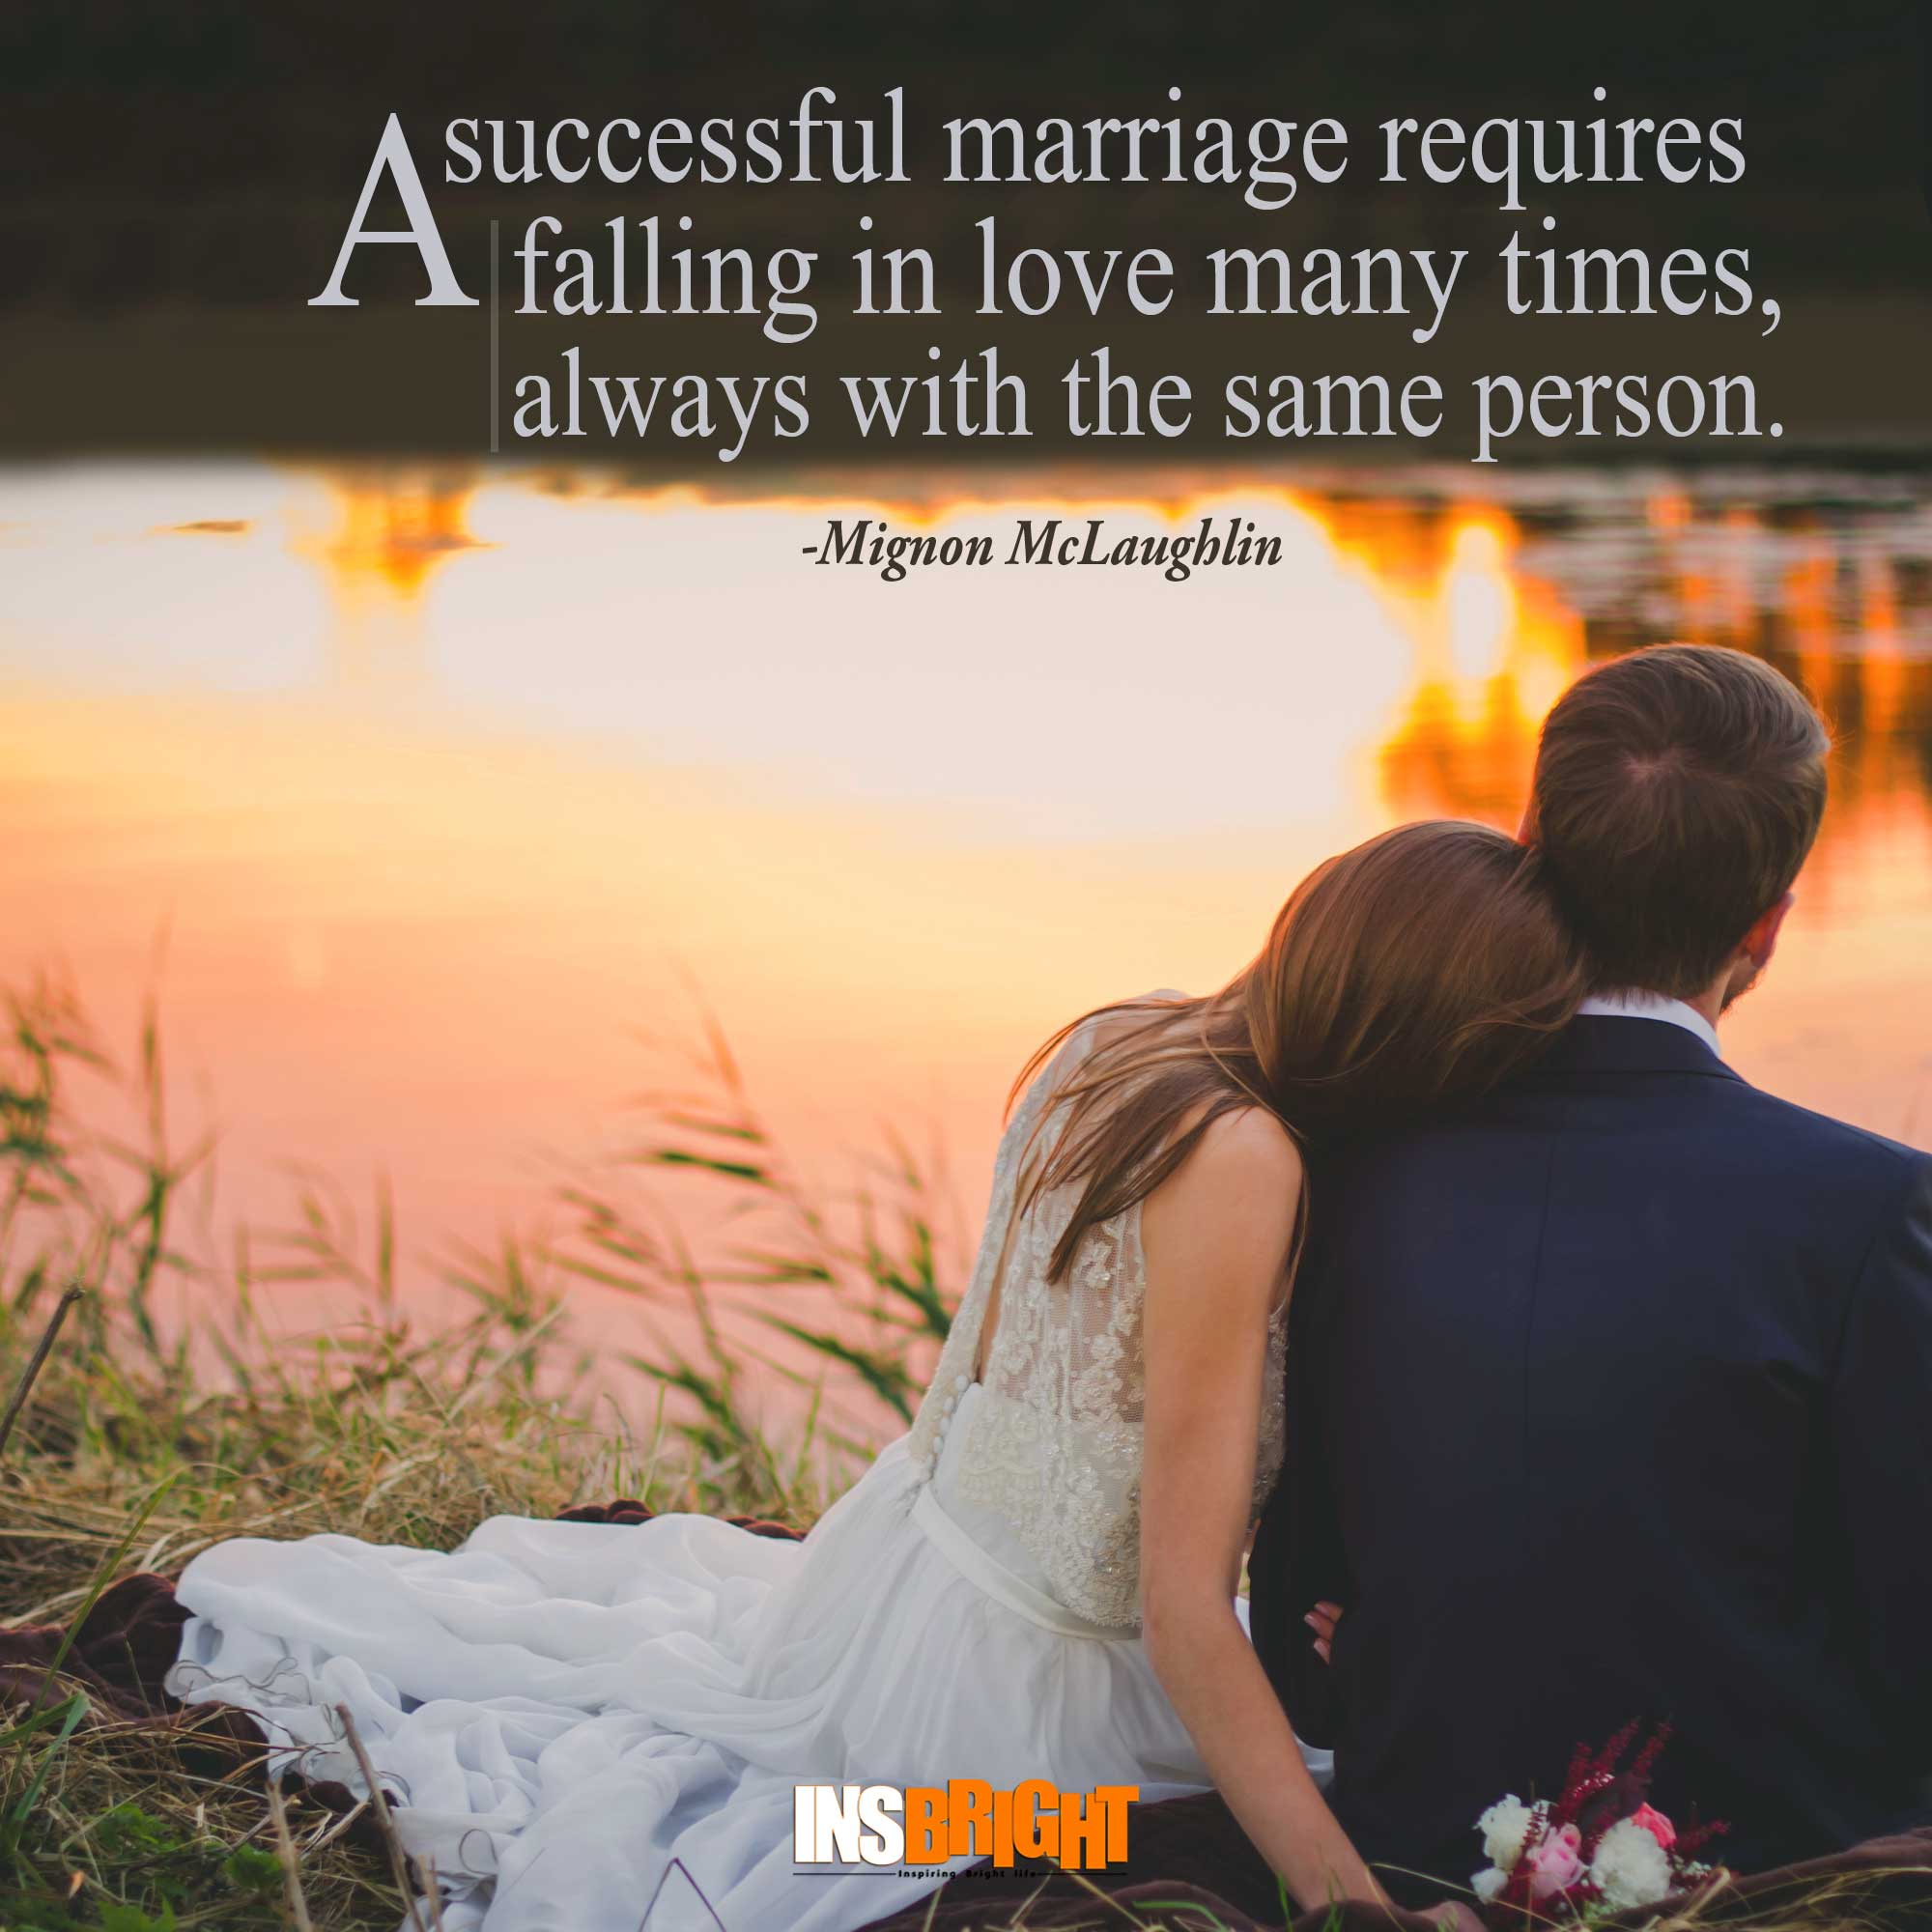 Inspirational Marriage Quotes By Famous People With Images Insbright